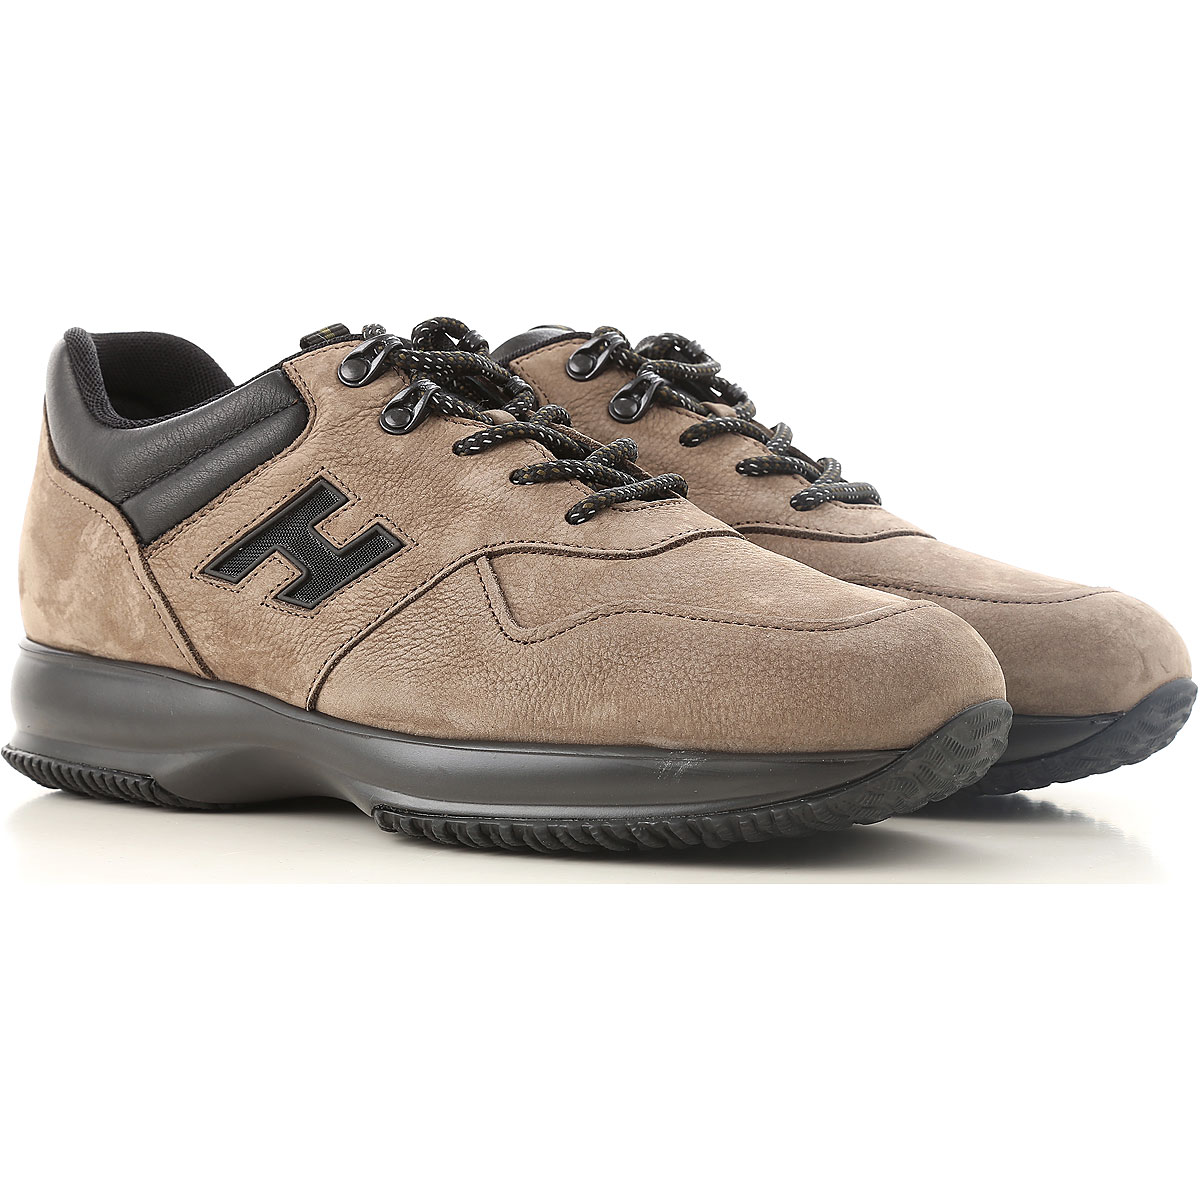 Hogan Sneakers for Men On Sale in Outlet Turtledove Grey SE - GOOFASH